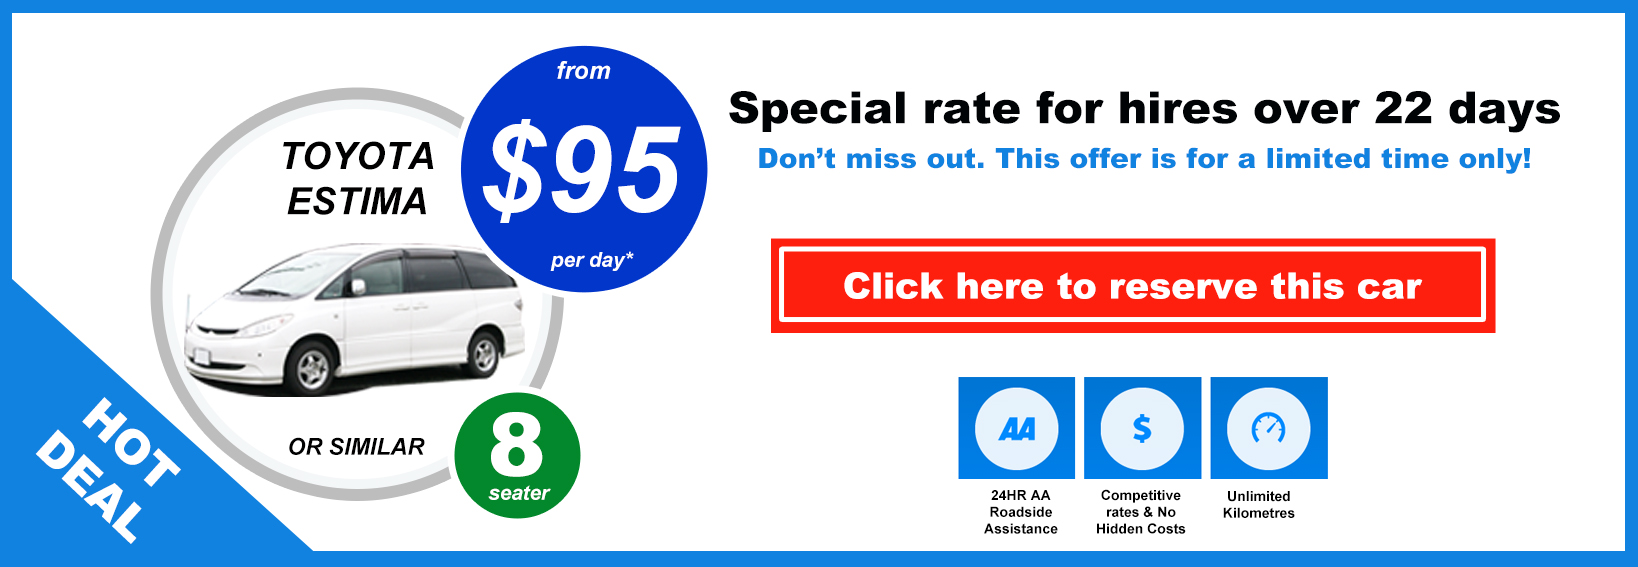 Car Rental Special Deals Auckland - People Mover